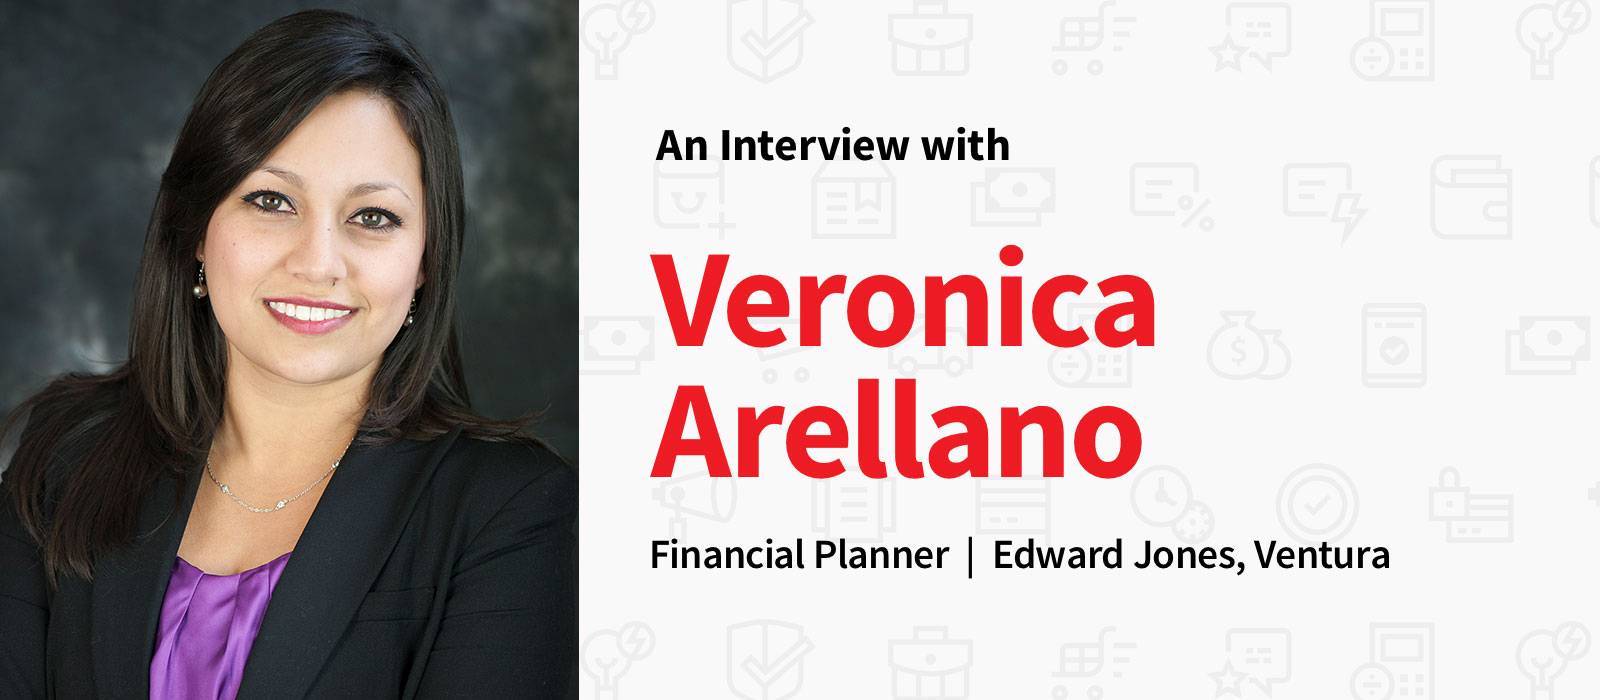 2018.8.16 Veronica Arellano Ventura financial planner interview